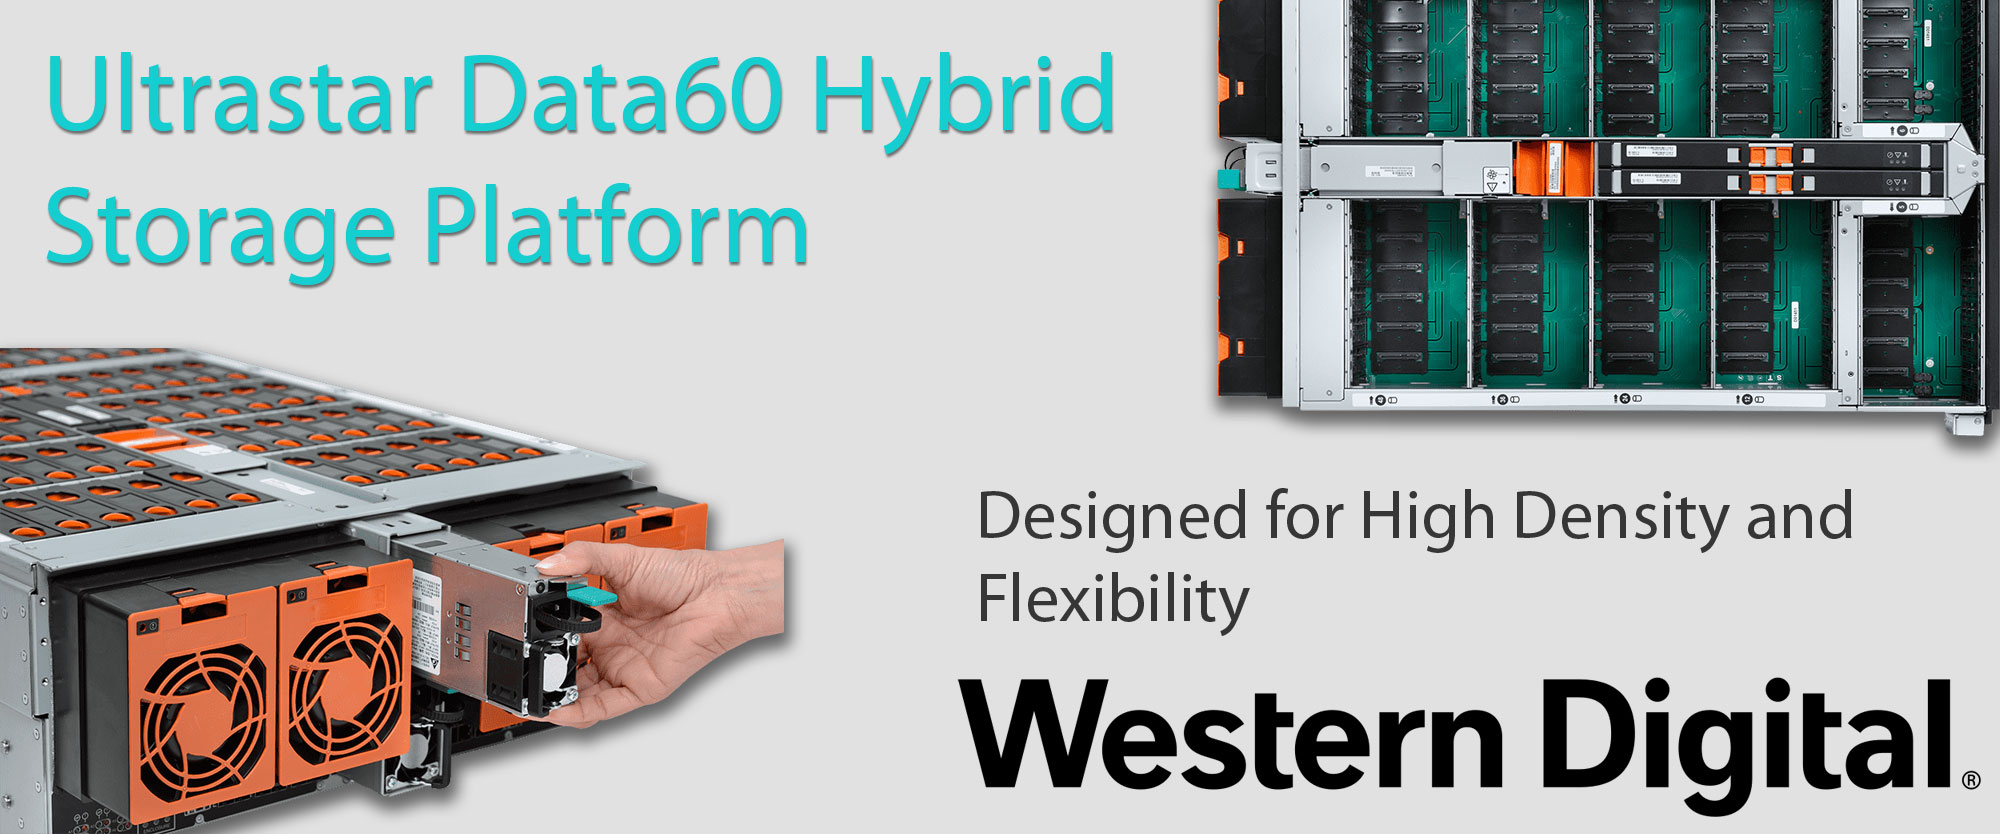 Ultrastar Data60 Hybrid Storage Platform